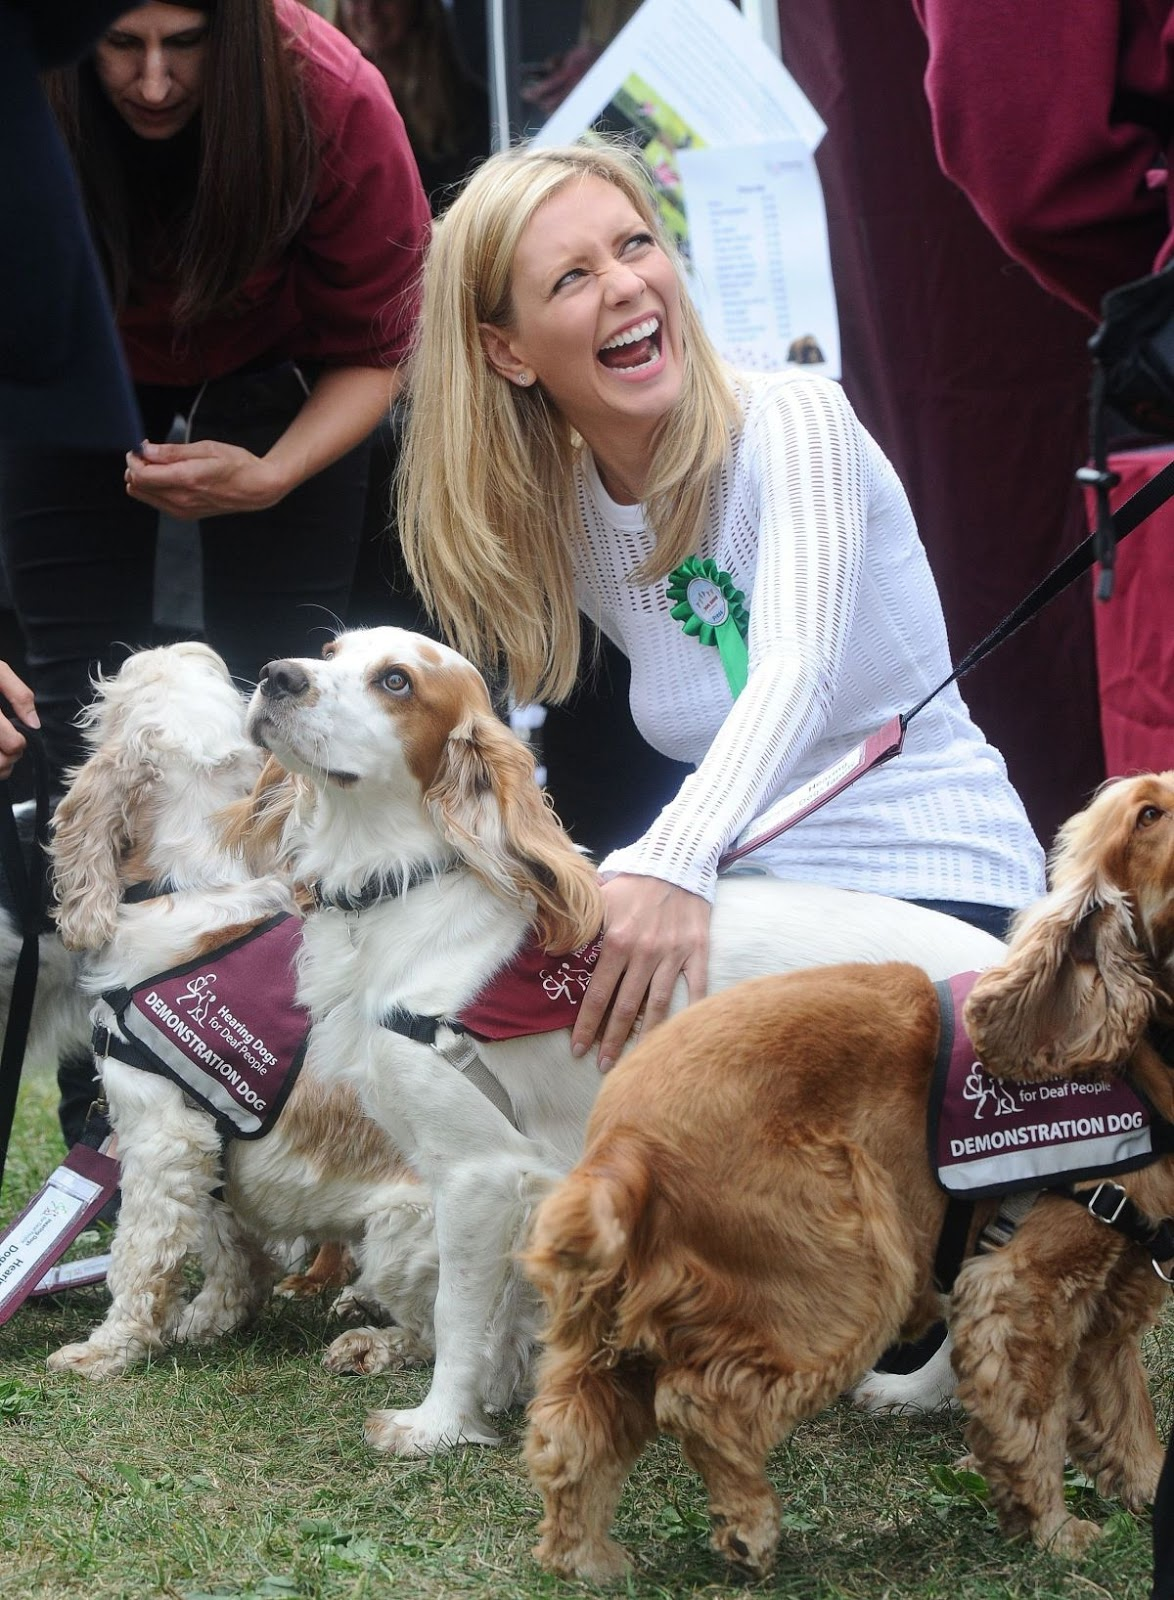 Full HQ Photos of Rachel Riley At Pupaid Anti Puppy Farming Event In Primrose Hill